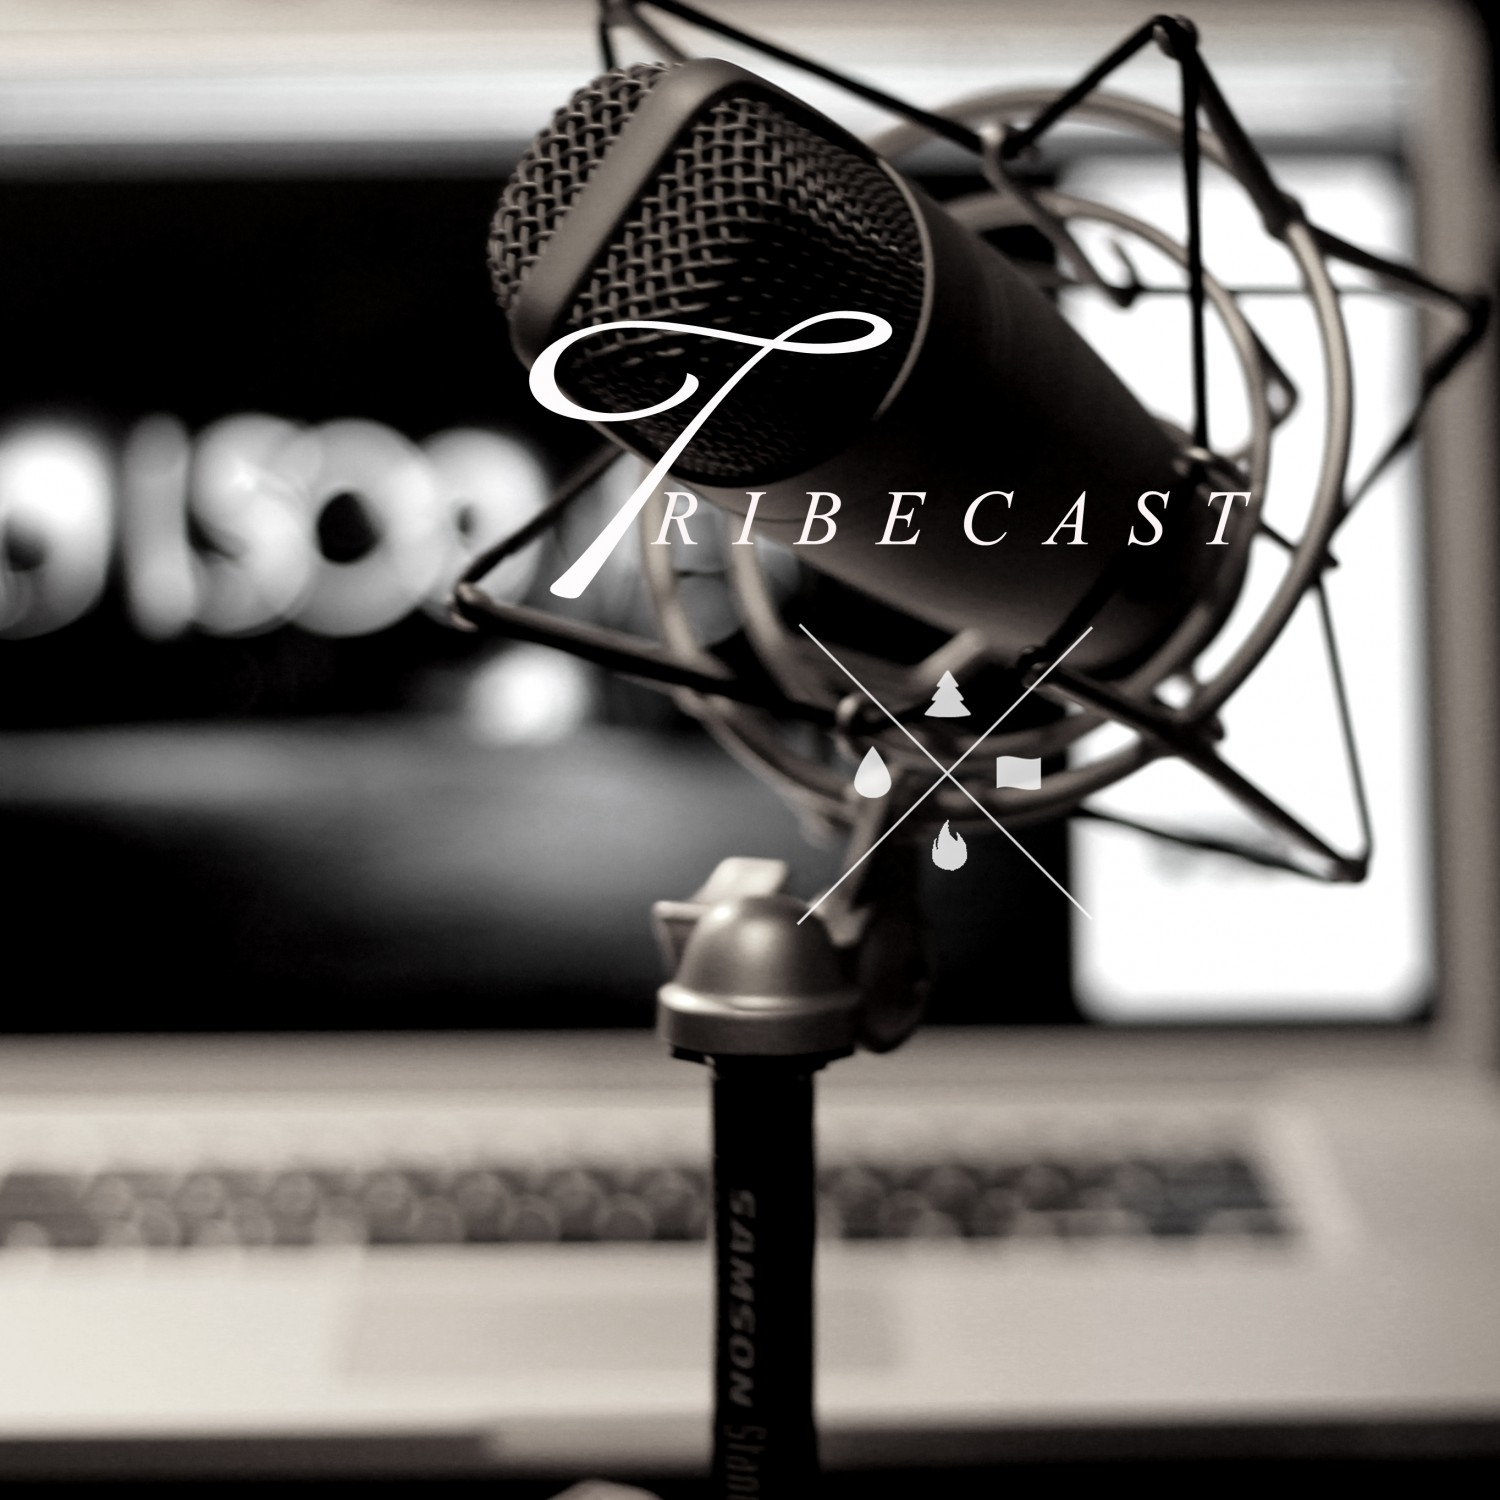 Discovery Church Prescott Tribecast